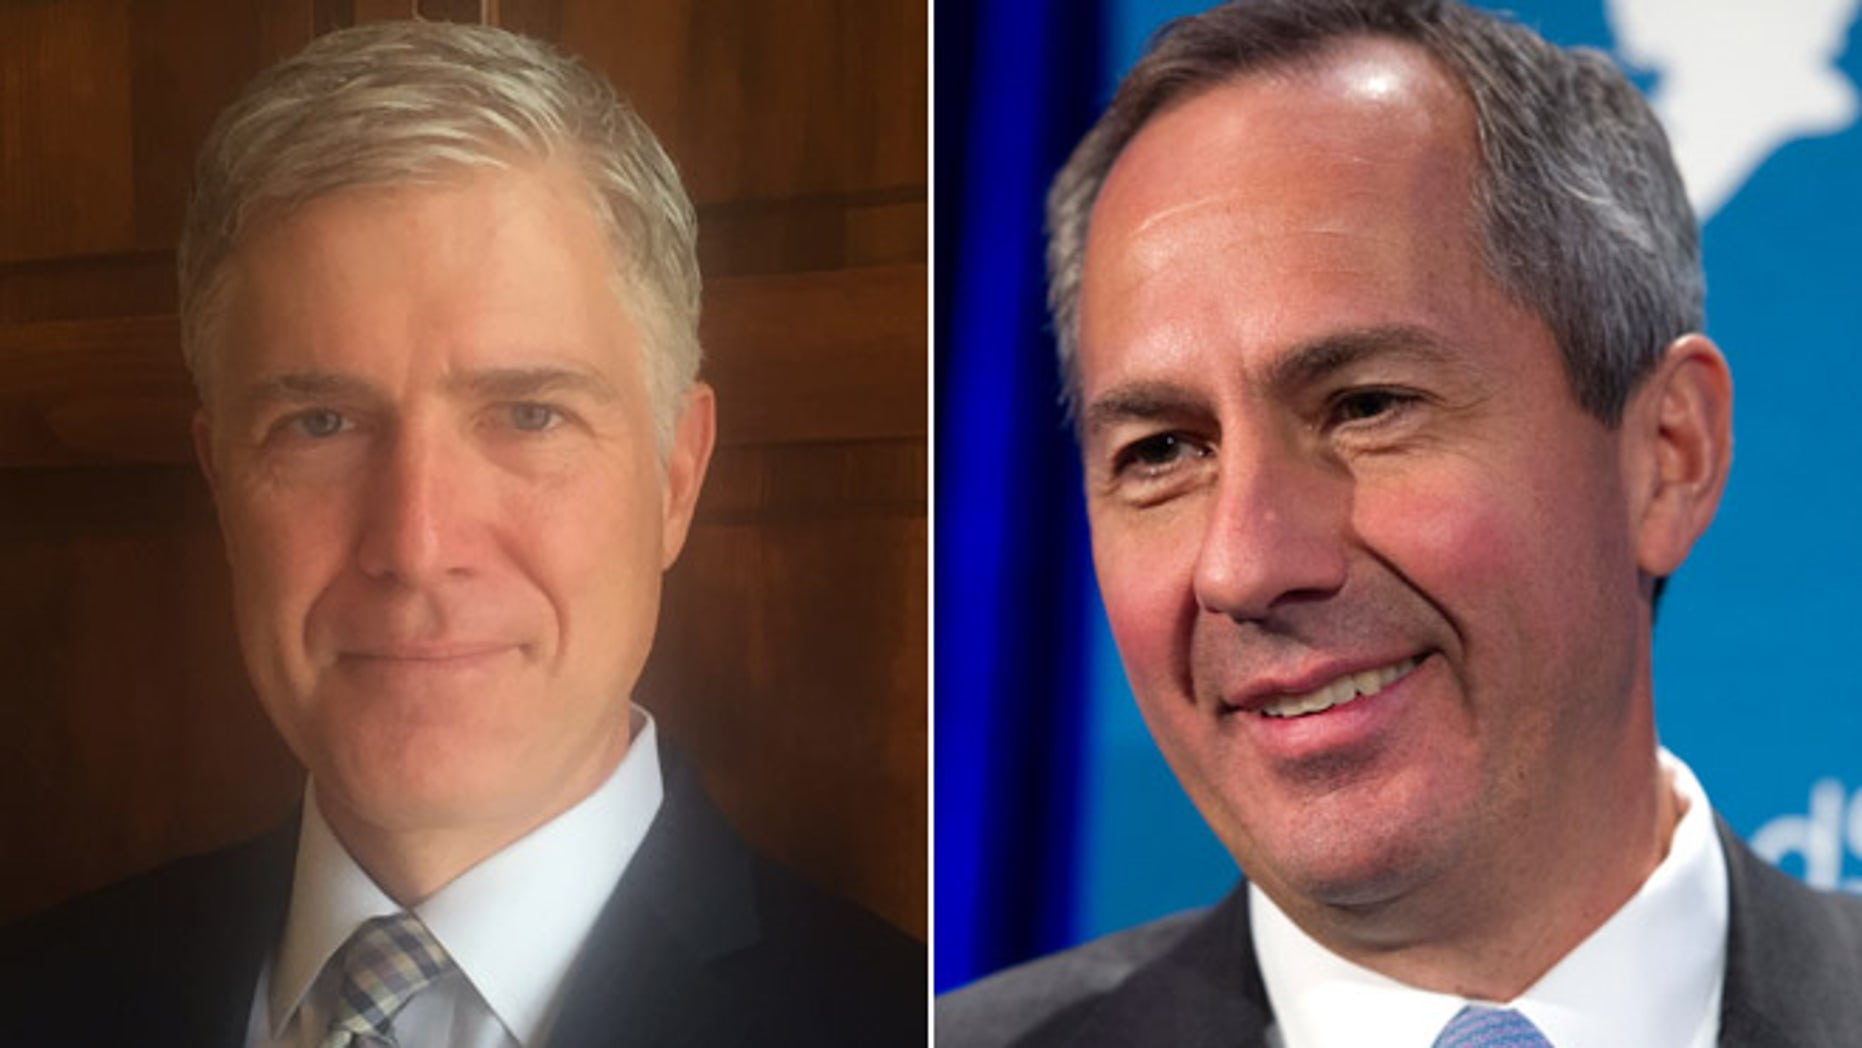 This image shows Judge Neil Gorsuch, left, and Judge Thomas Hardiman, right.